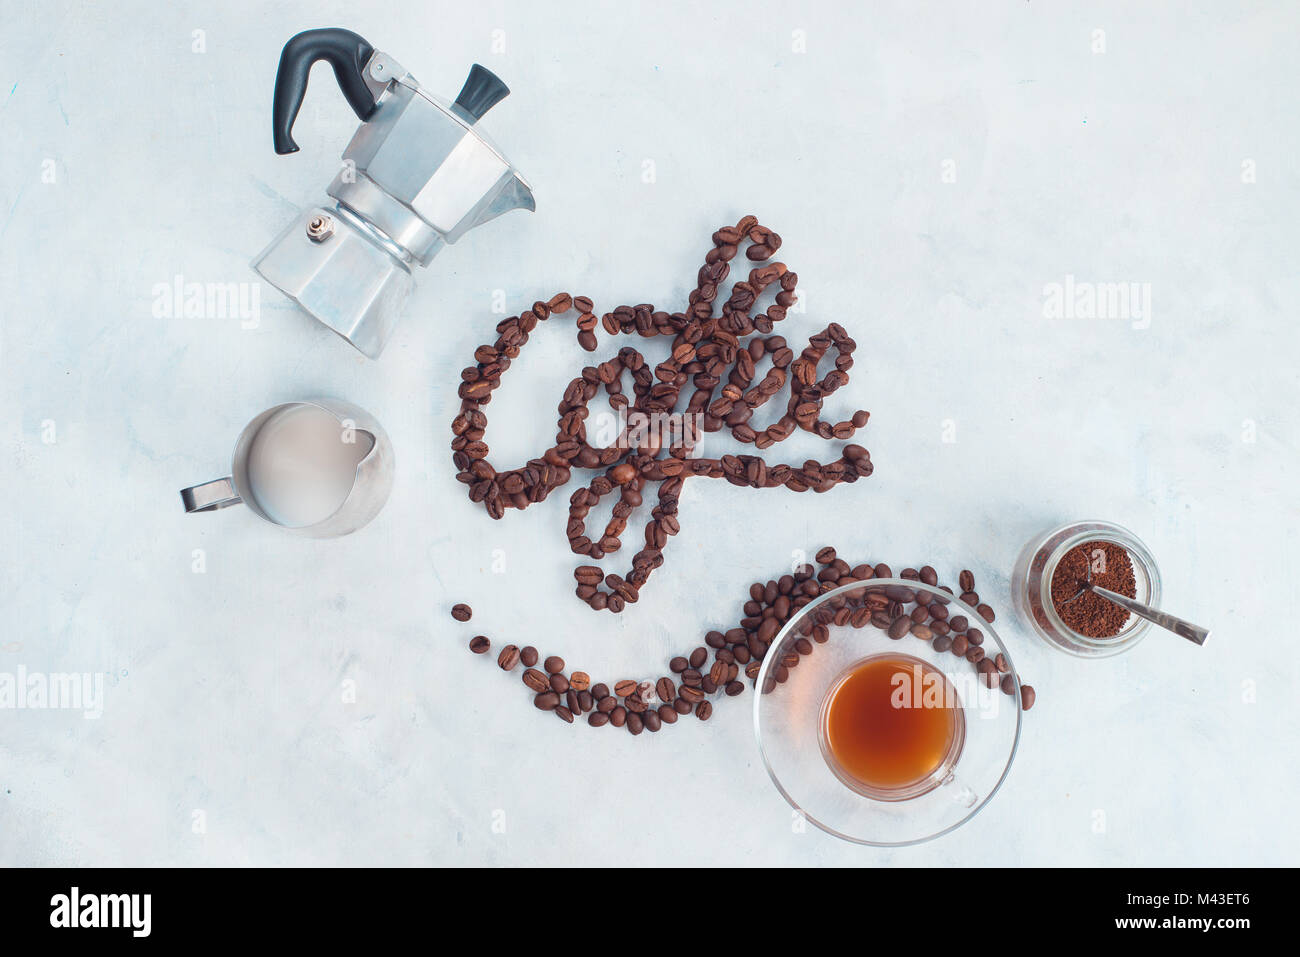 Food lettering concept. Word Coffee made with coffee beans. High key drink photography from above. Food typography. - Stock Image